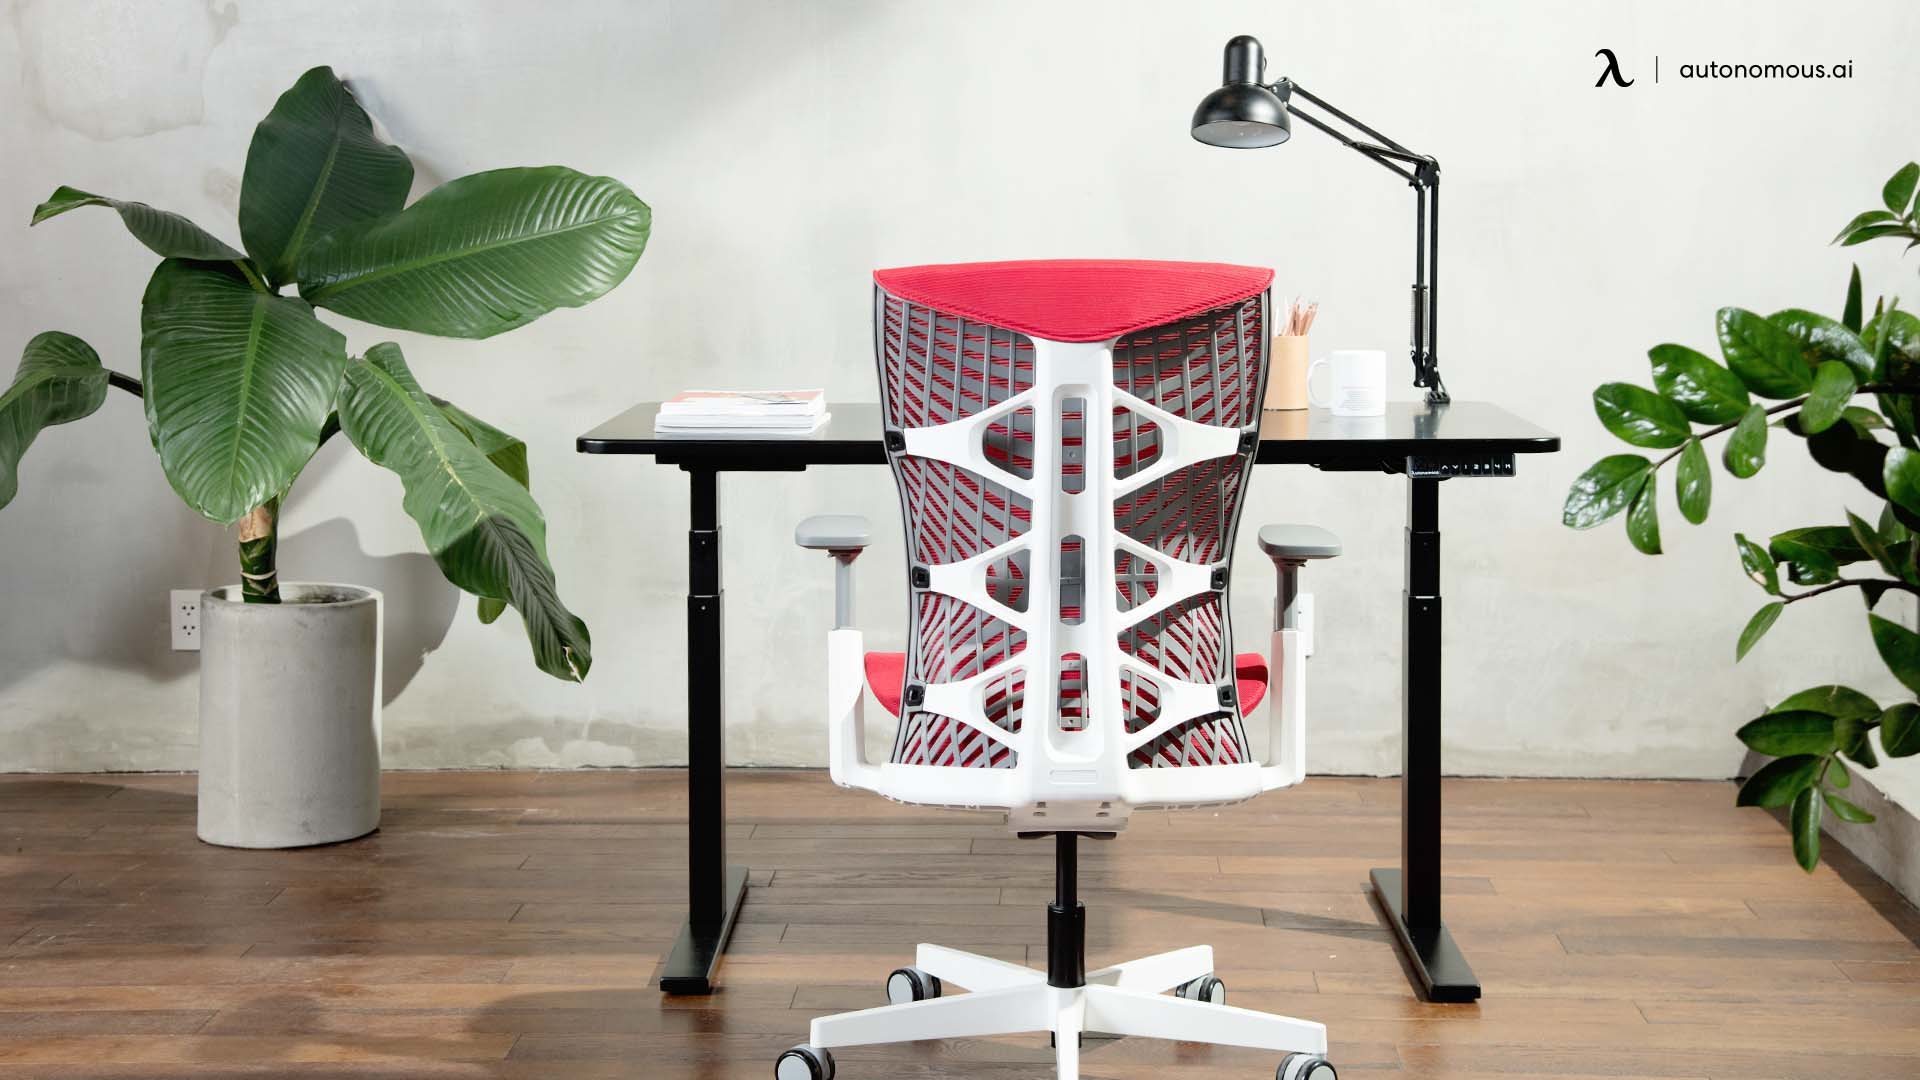 The Ultimate Ergonomic Workspace: Complete Guide